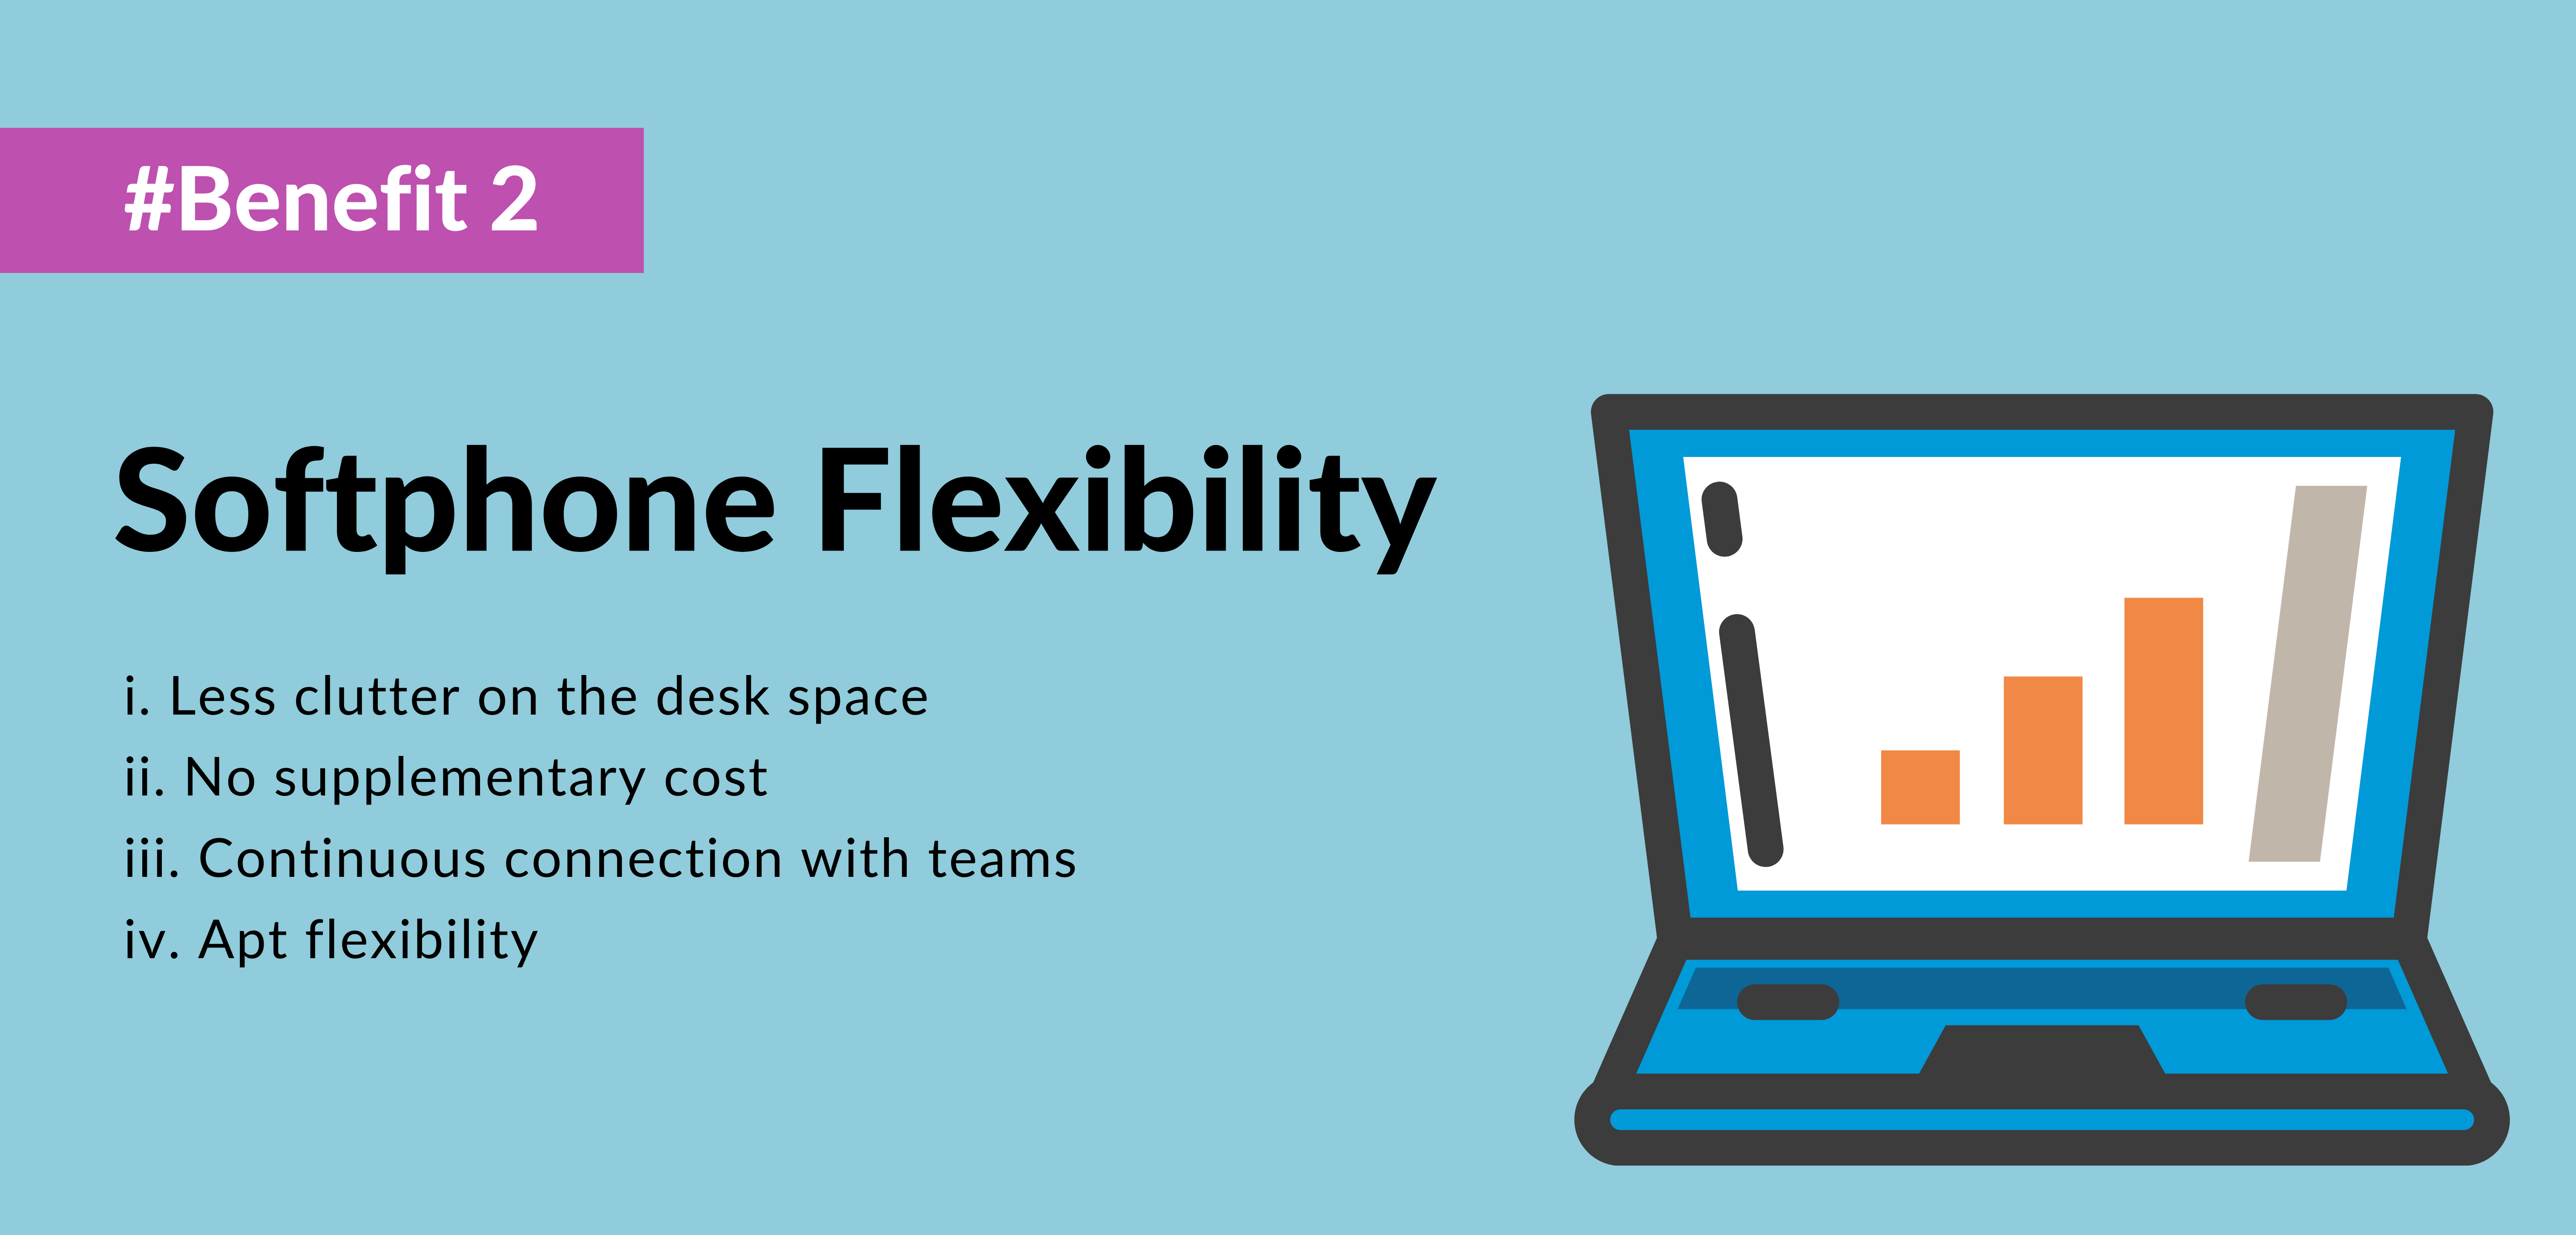 second benefit of using voip is softphone flexibility - telecloud